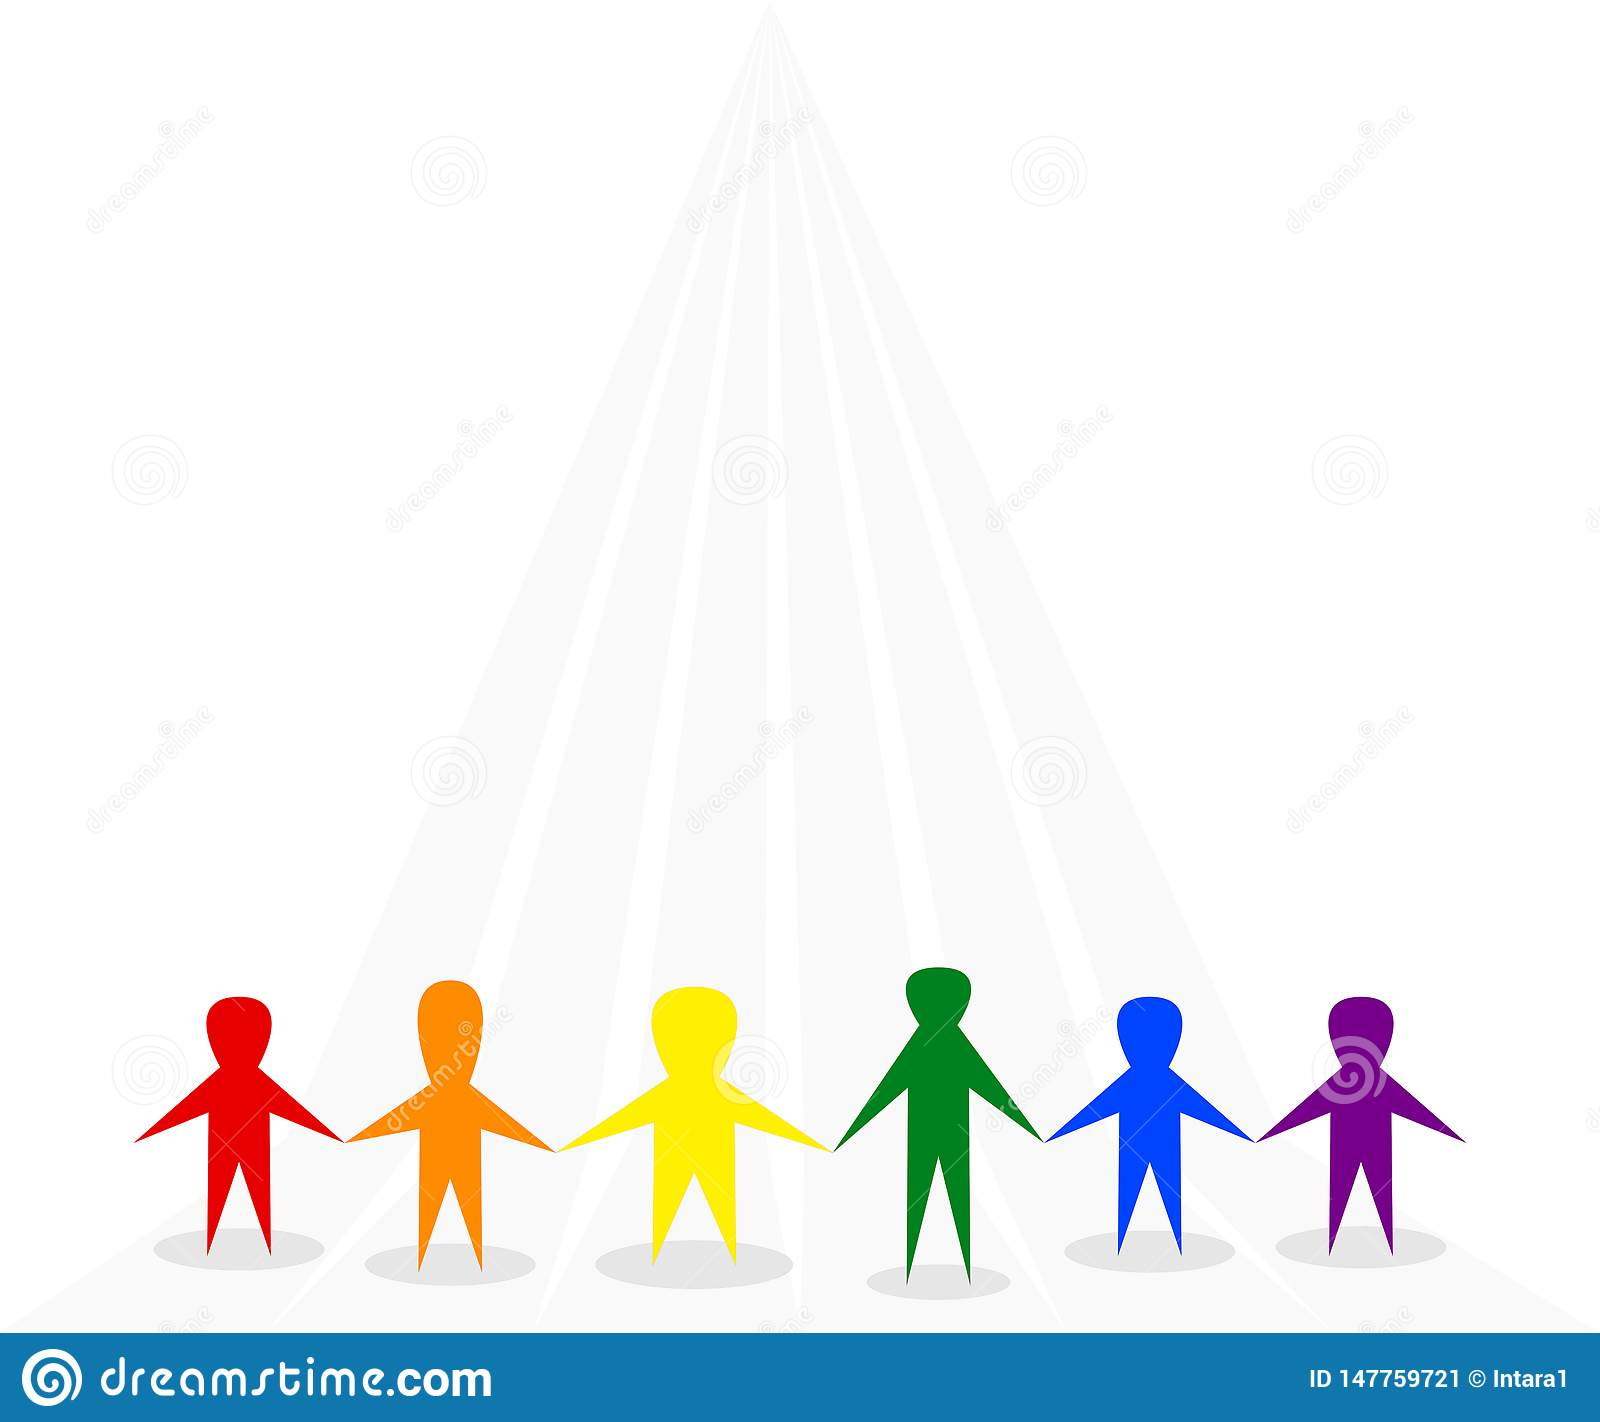 Symbol of people standing together on gray background, use LGBTQ symbolic rainbow colors red, orange, yellow, green, blue, purple